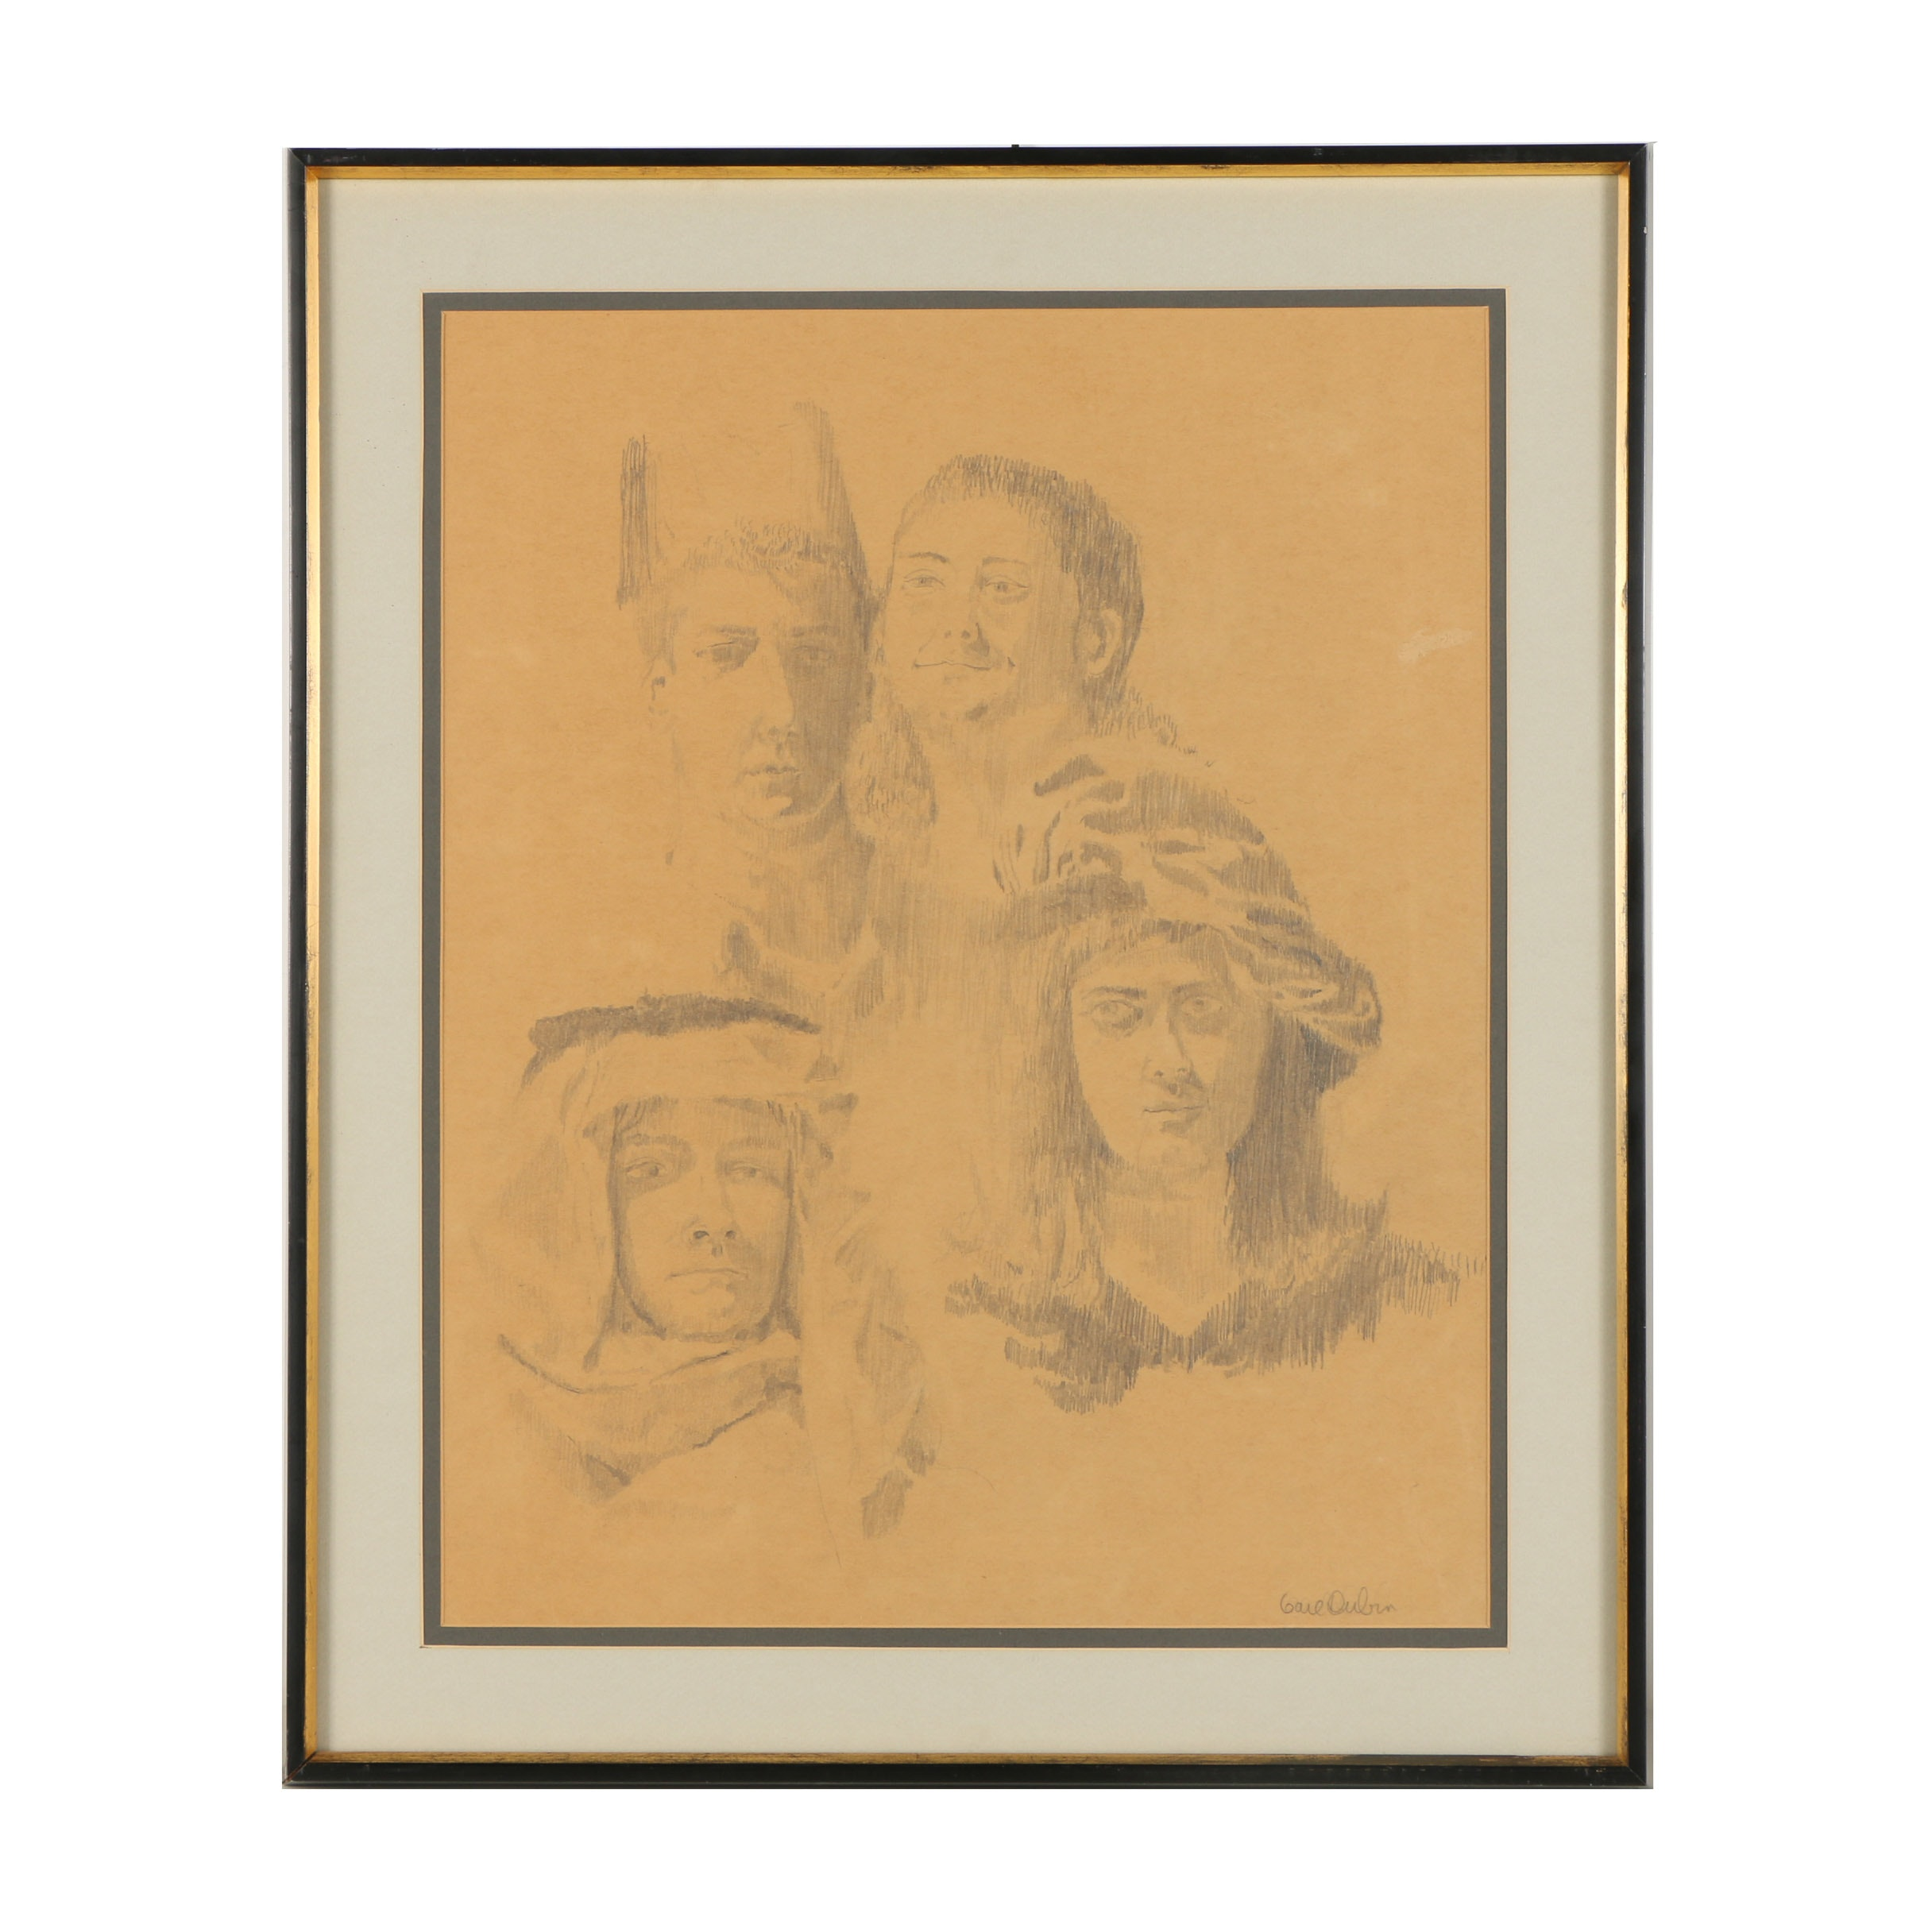 20th-Century Graphite Drawing of Four Men's Portraits